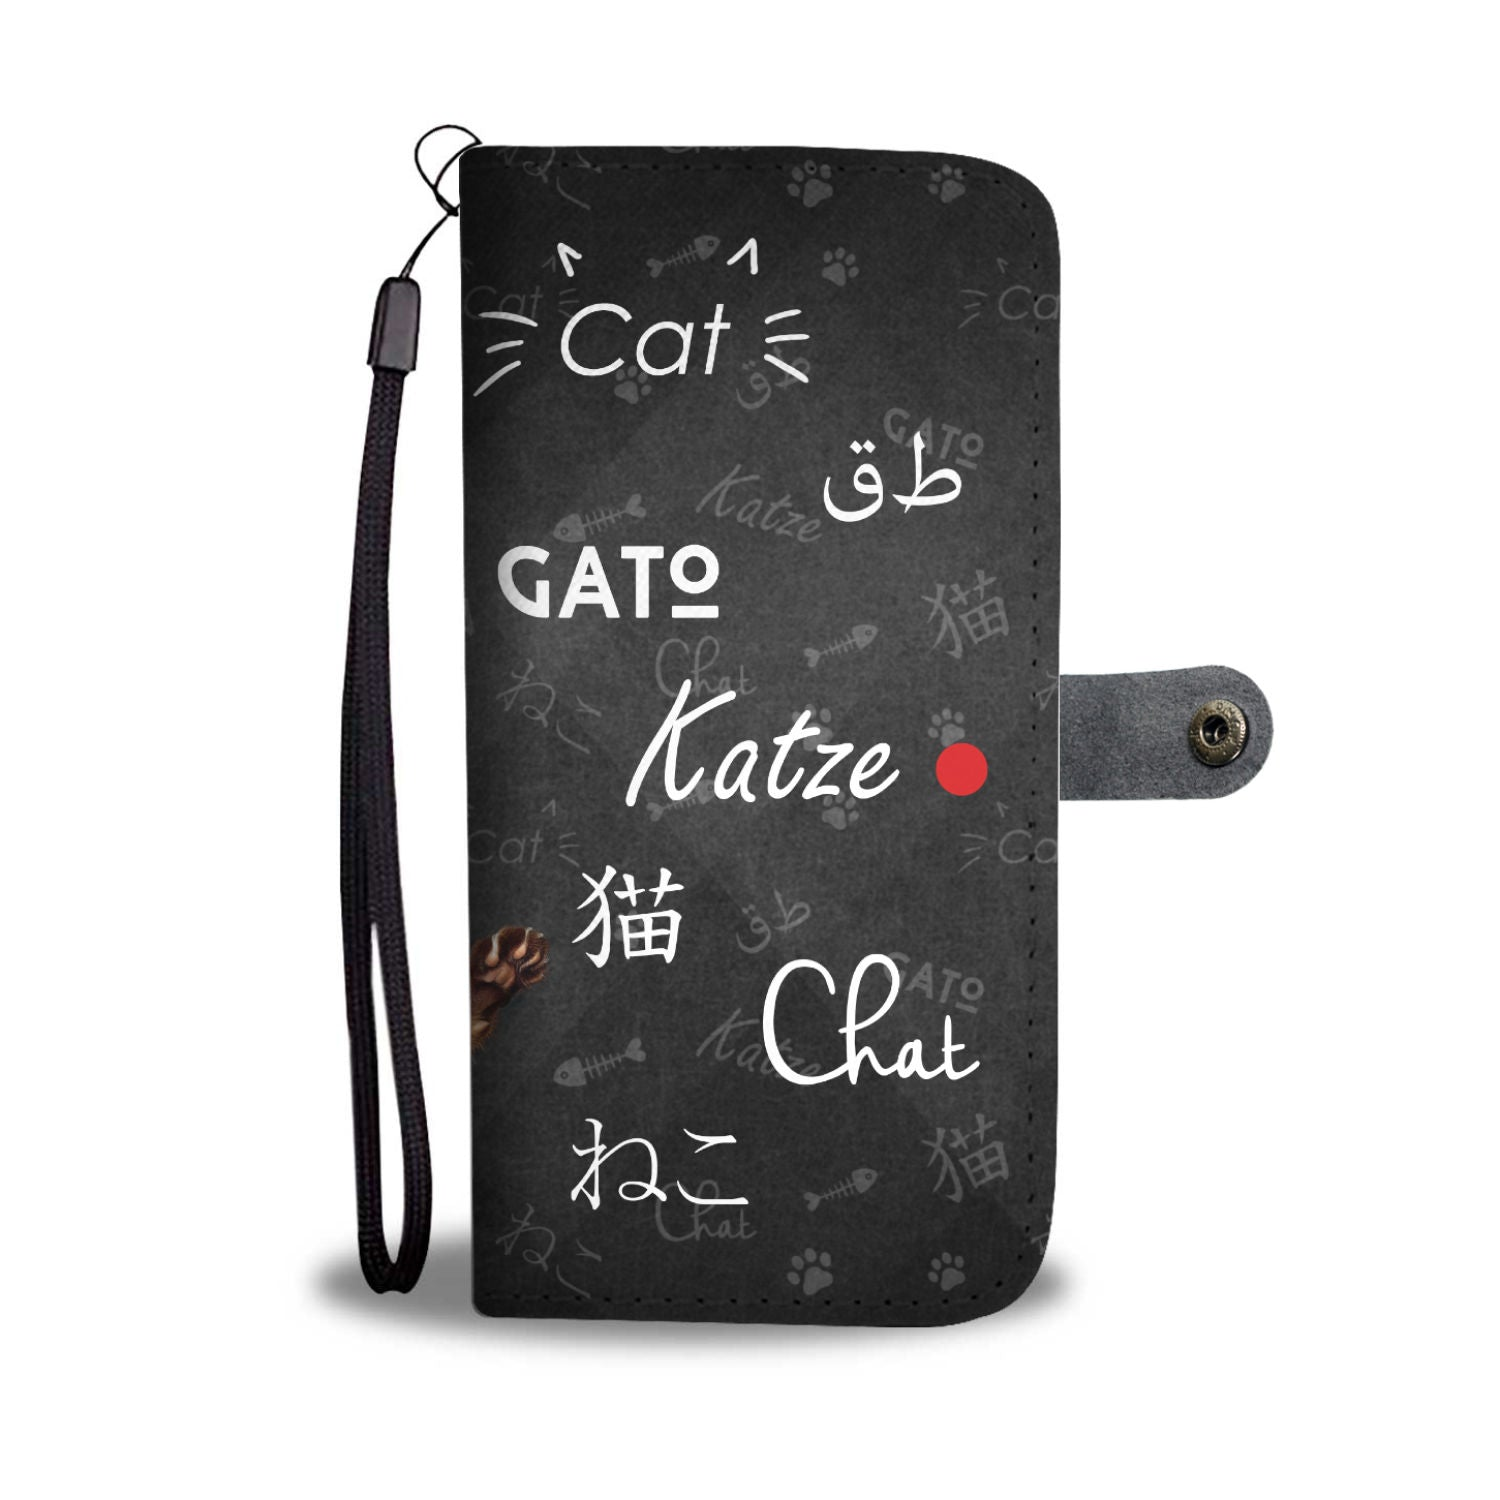 TR Cat Katze Wallet Case